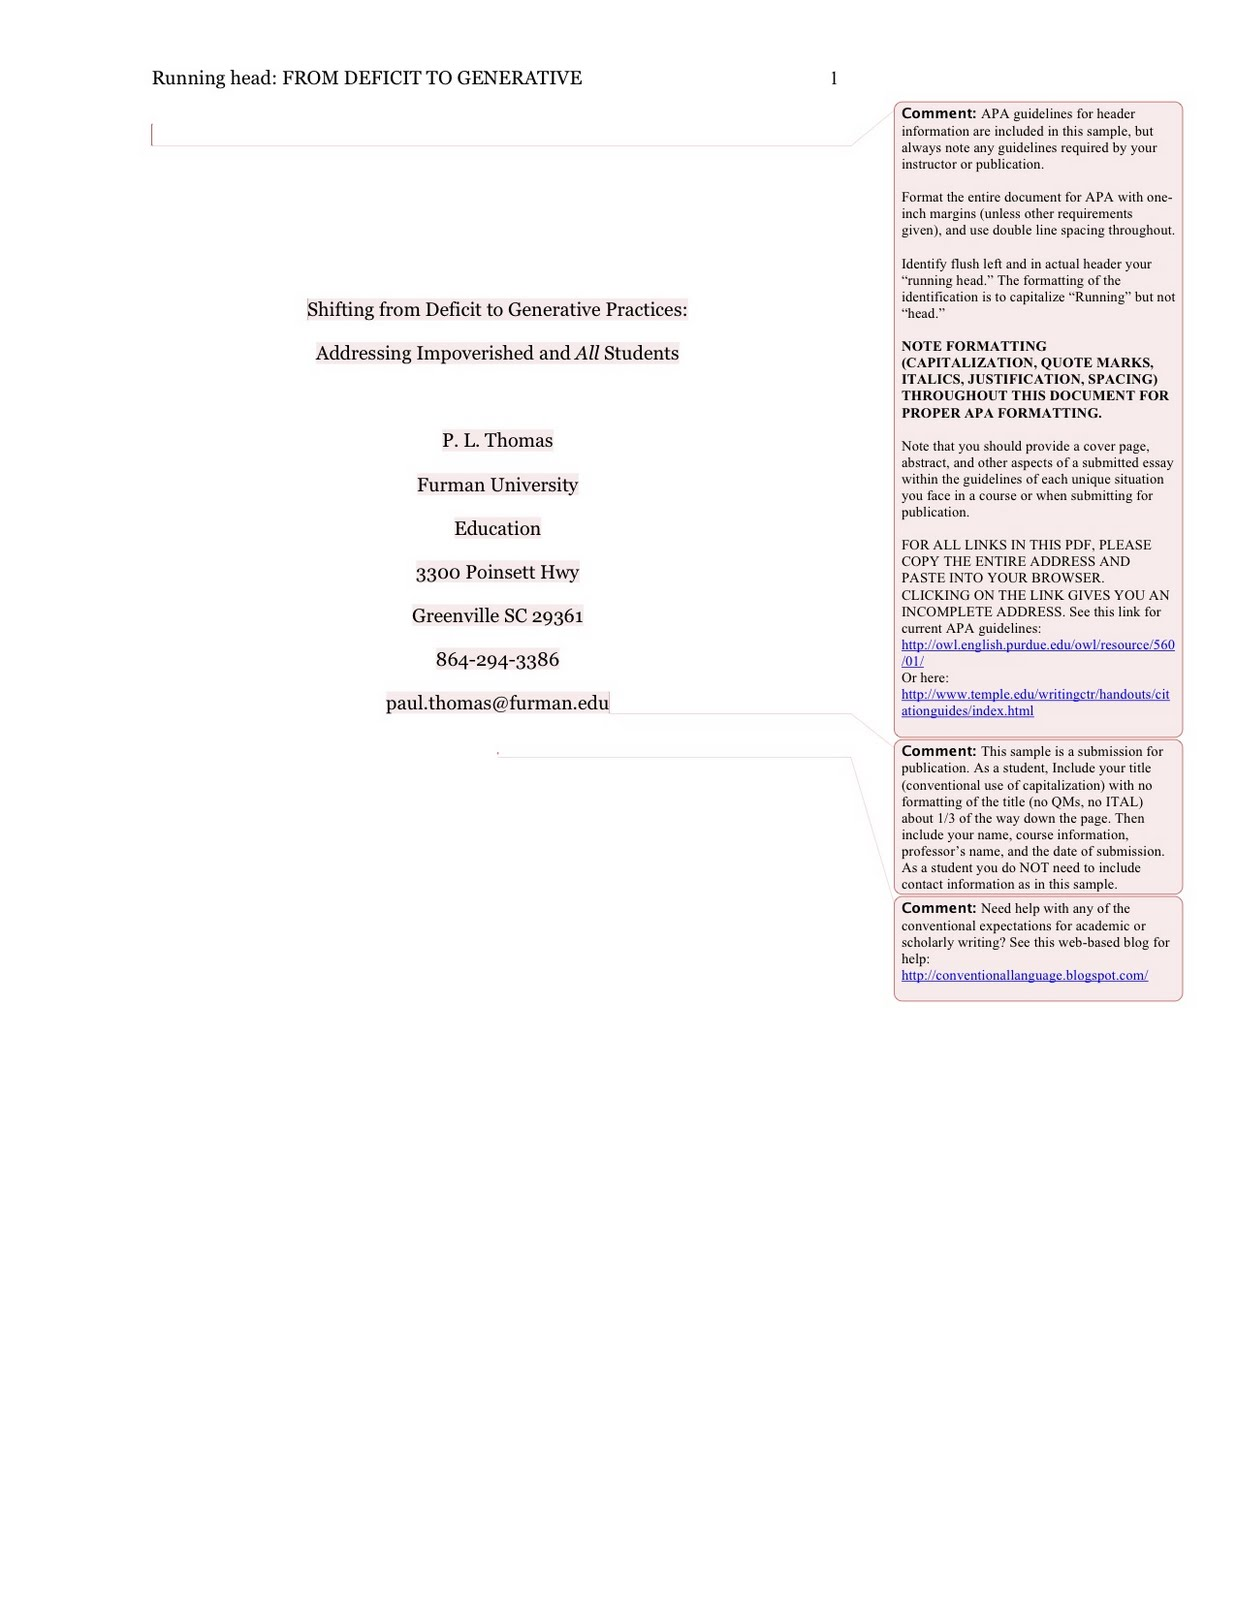 apa first page example